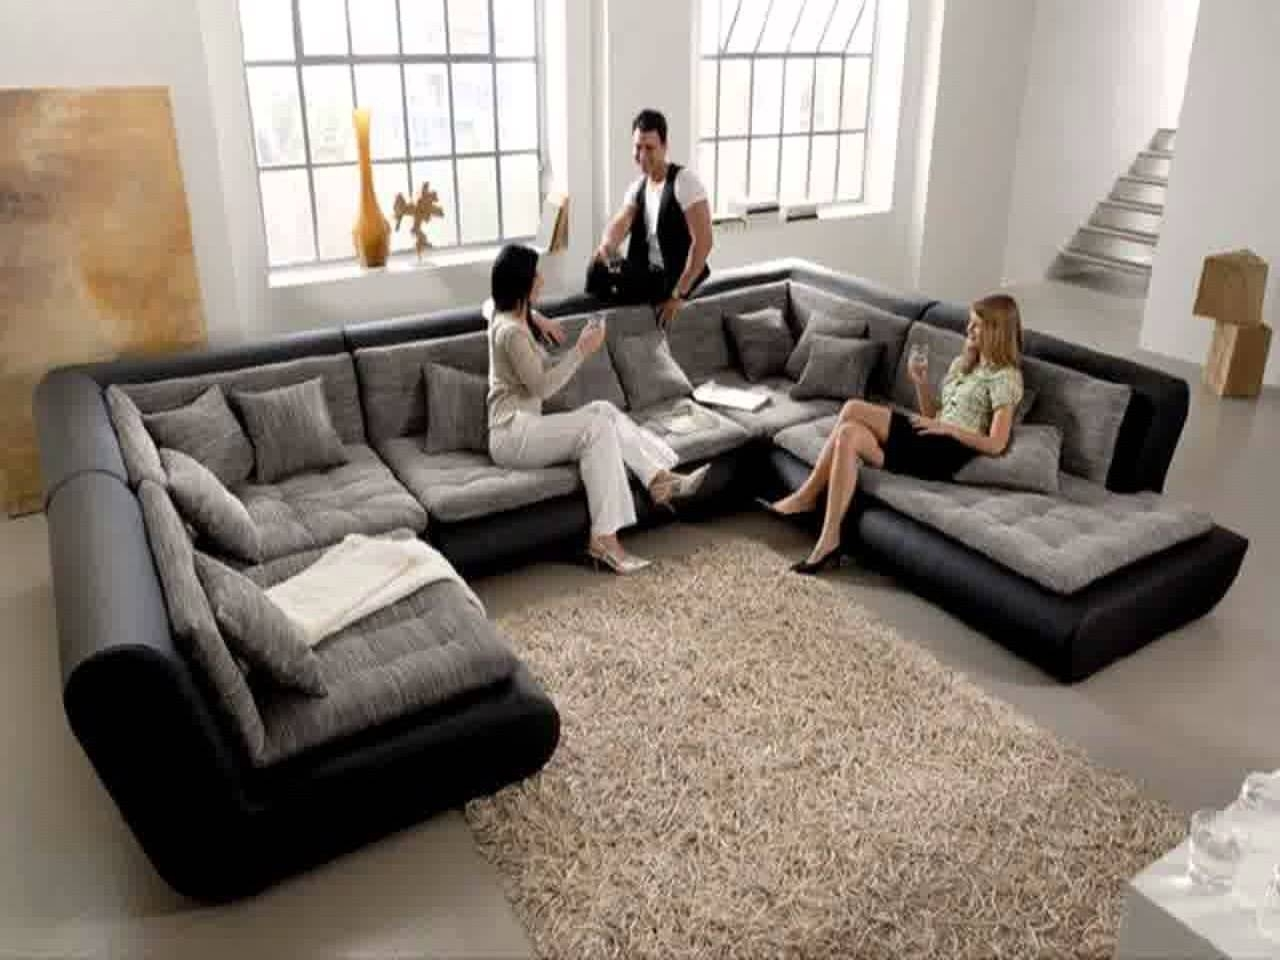 Sectional Sofas Bassett Youtube Best Sectional Sofa Brands | Freedom To Intended For Sectional Sofas At Bassett (Image 8 of 10)